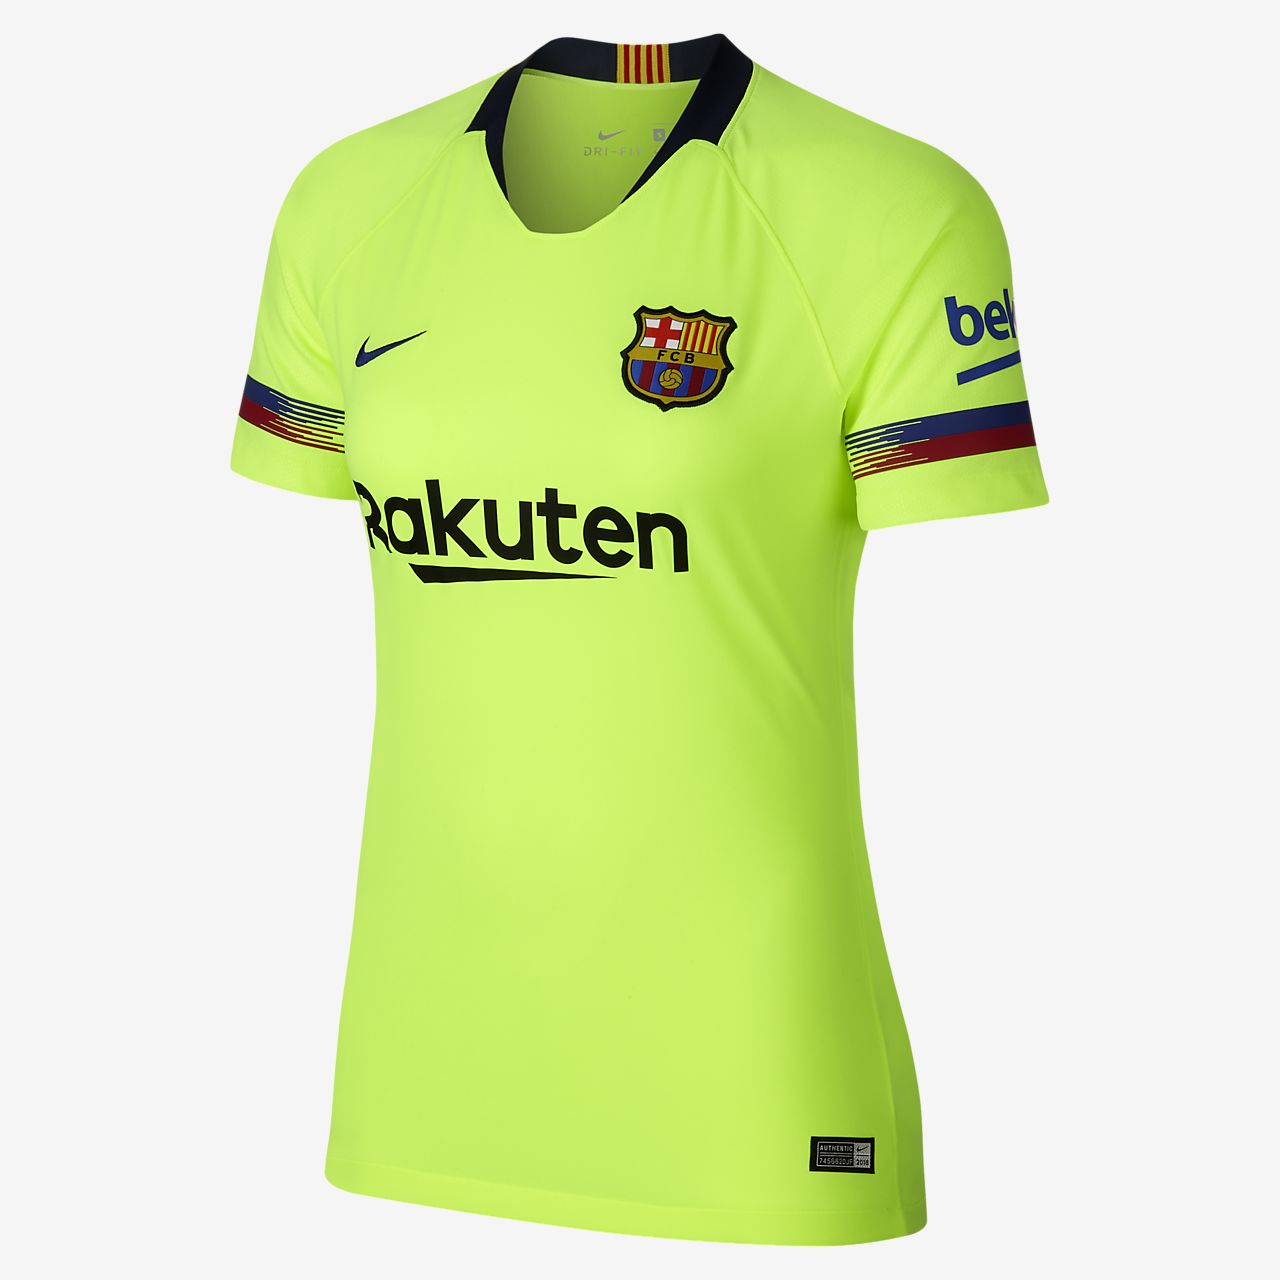 2018/19 FC Barcelona Stadium Away Women's Football Shirt